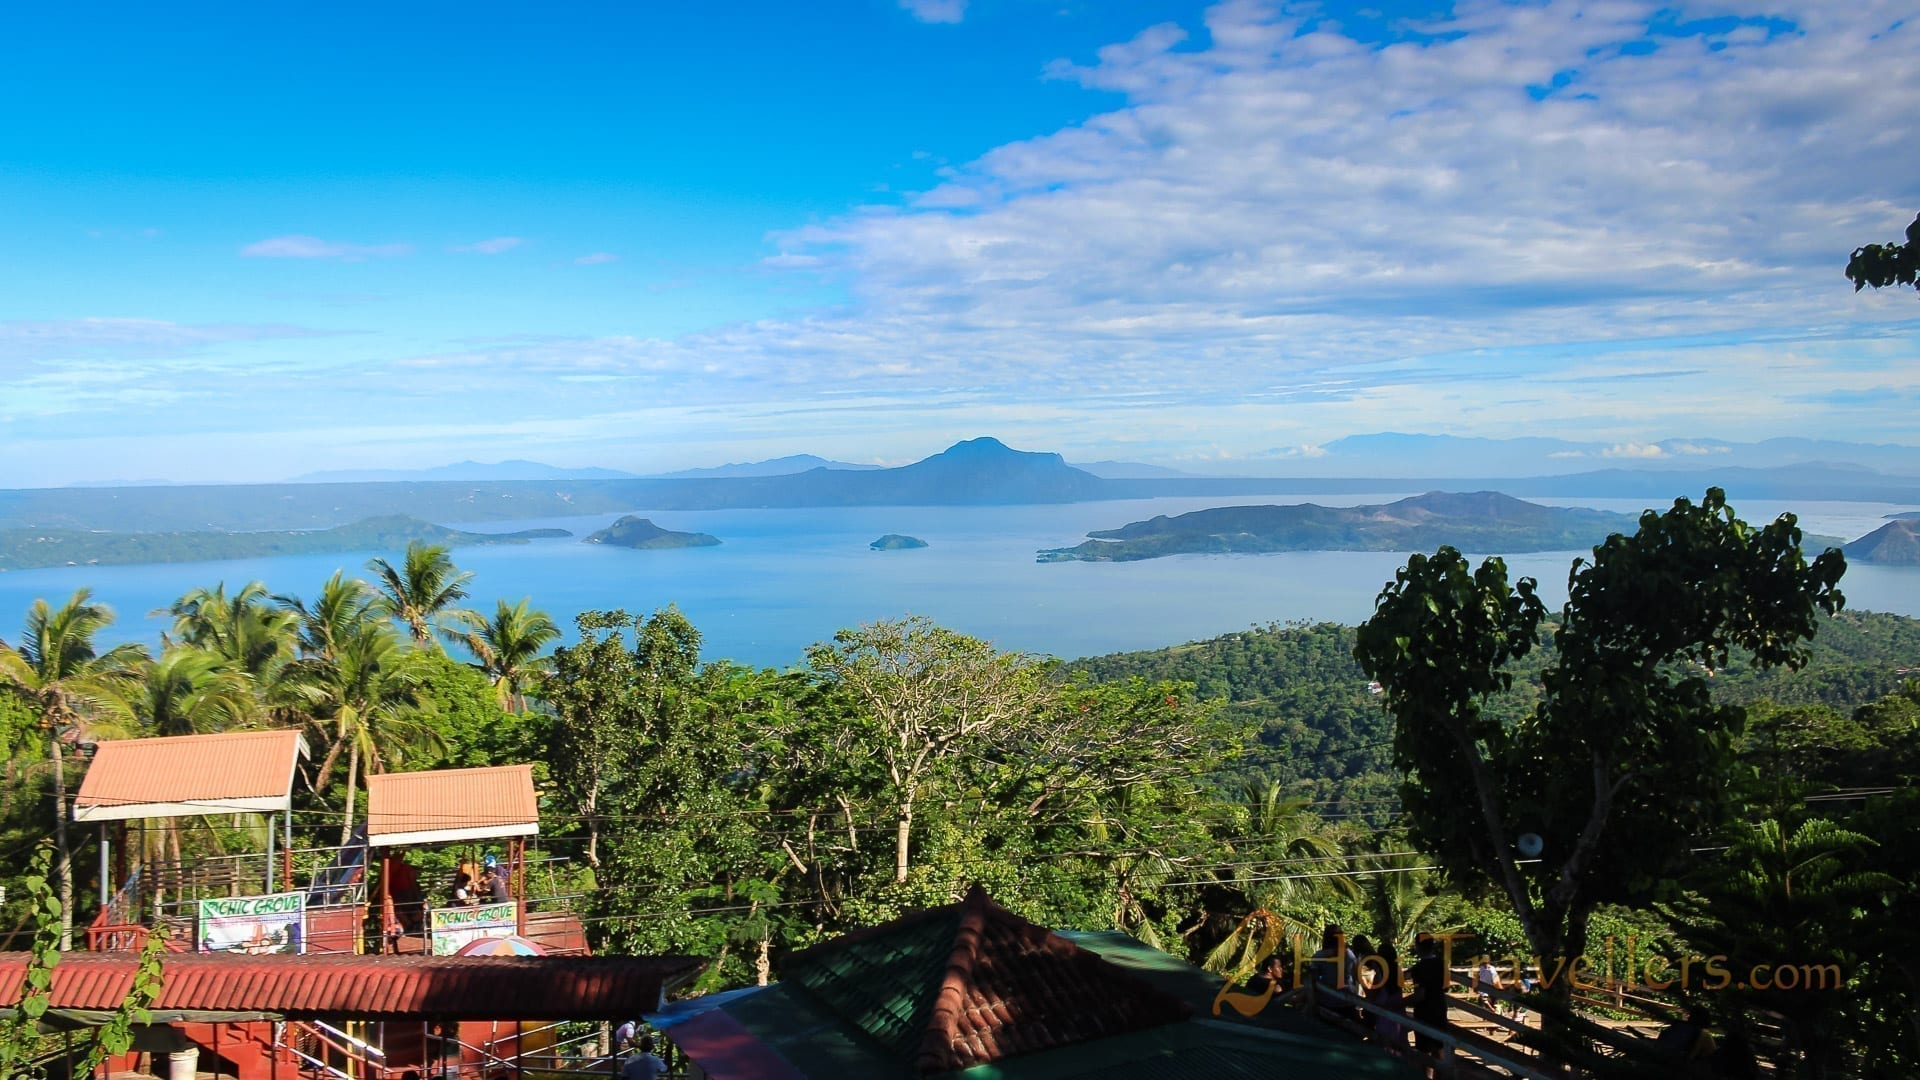 View of Taal Lake and volcano from Picnic grove Tagaytay